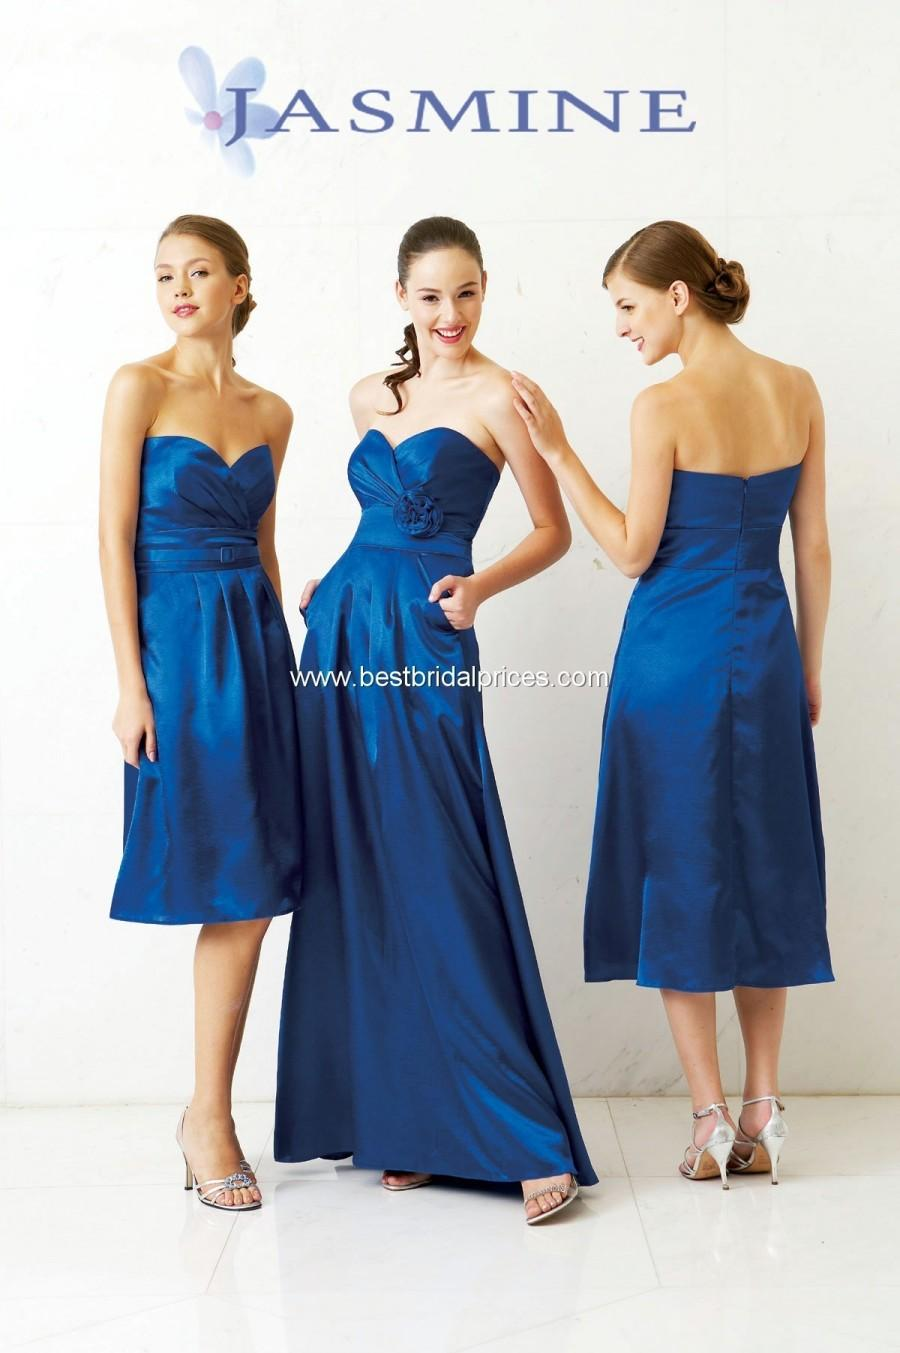 زفاف - Jasmine Bridesmaid Dresses - Style P39015 - Formal Day Dresses